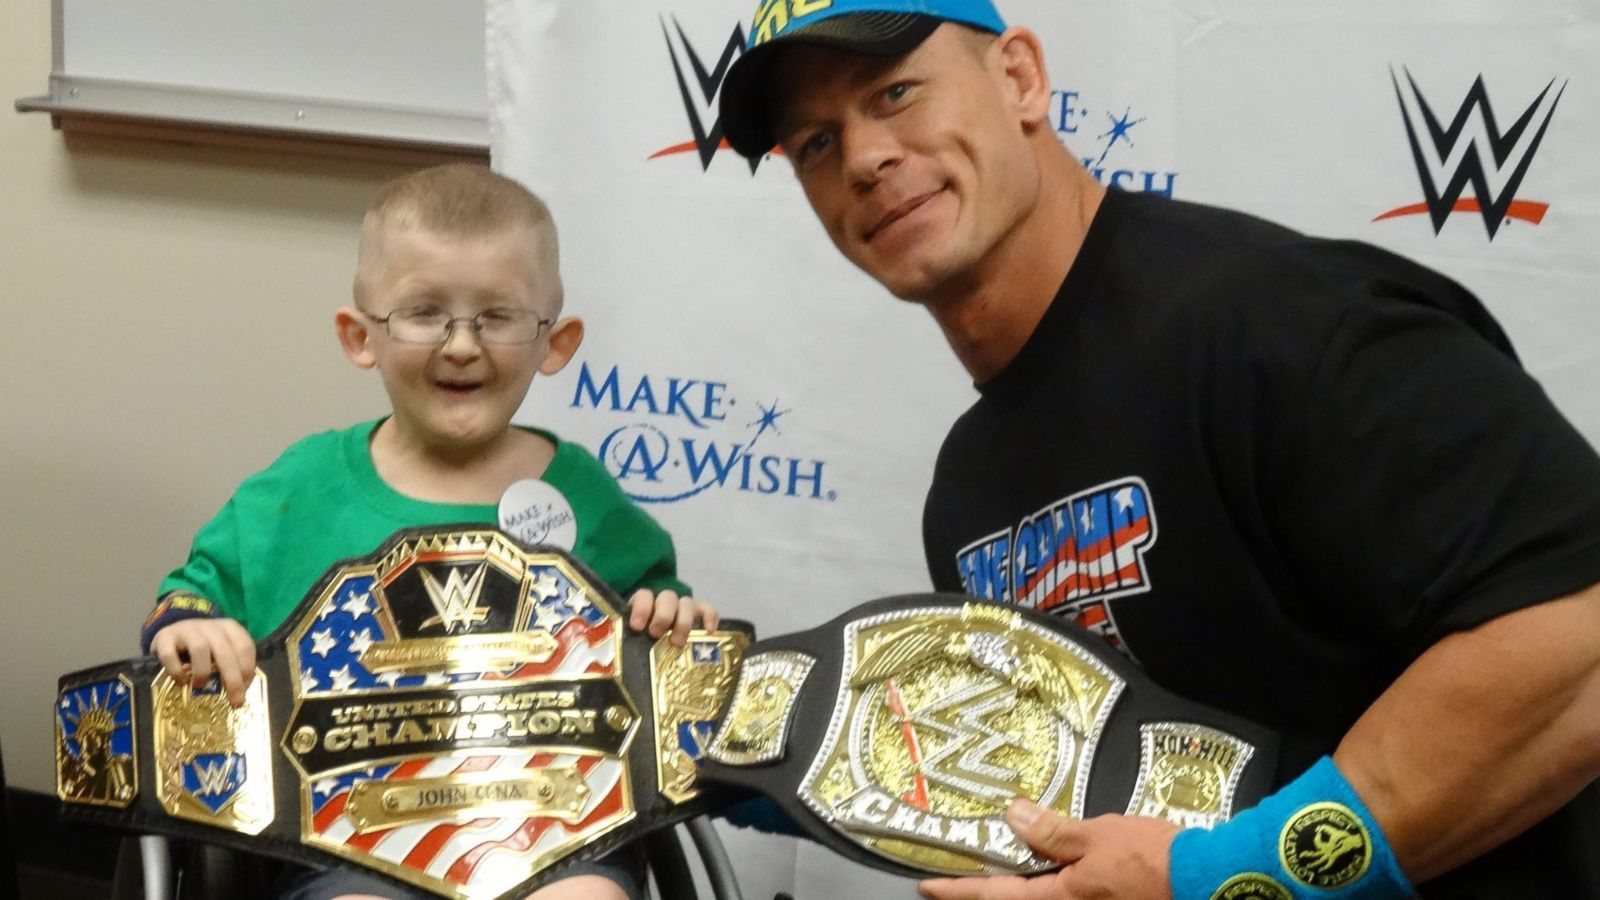 WWE Legend John Cena Helped 8-Year-Old Boy To Save His Sister's Life 1